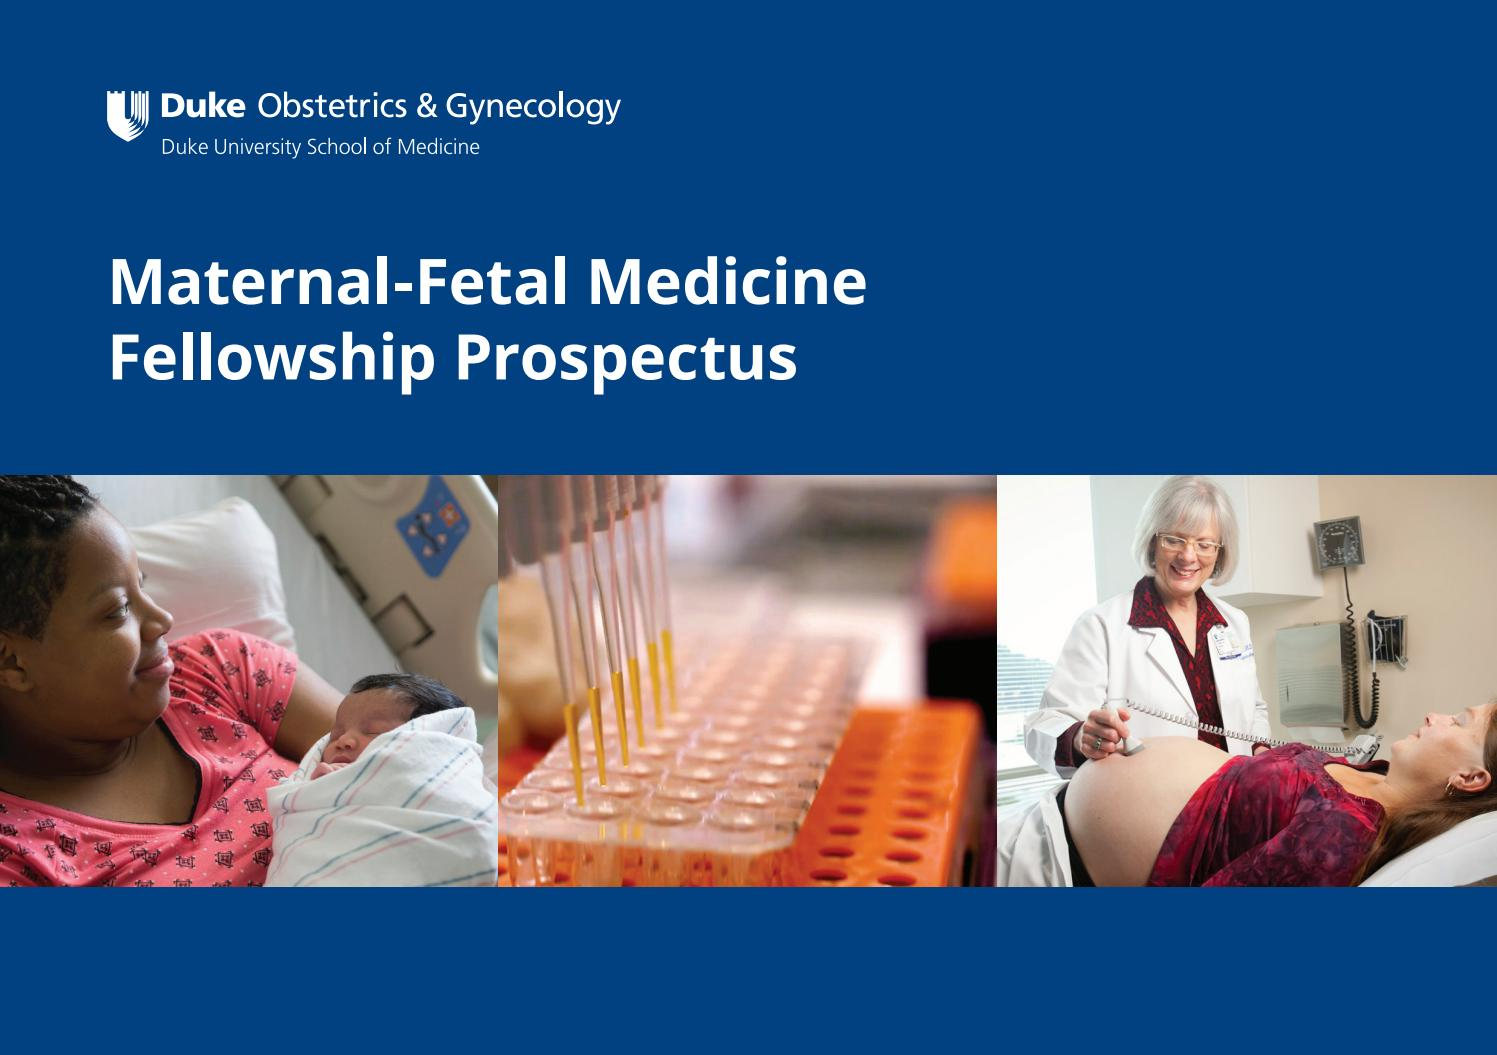 Duke Ob/Gyn Maternal-Fetal Medicine Fellowship Prospectus by